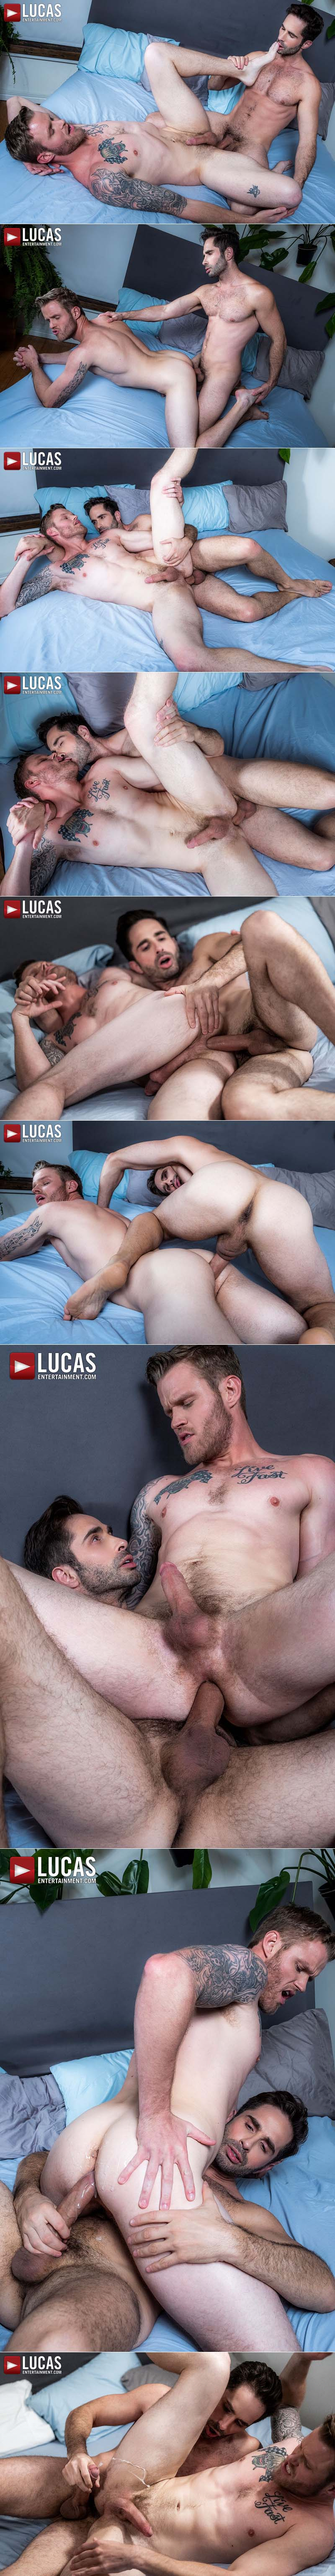 Ganged, Banged and Pounded, Scene Three: Michael Lucas Tops Shawn Reeve at Lucas Entertainment